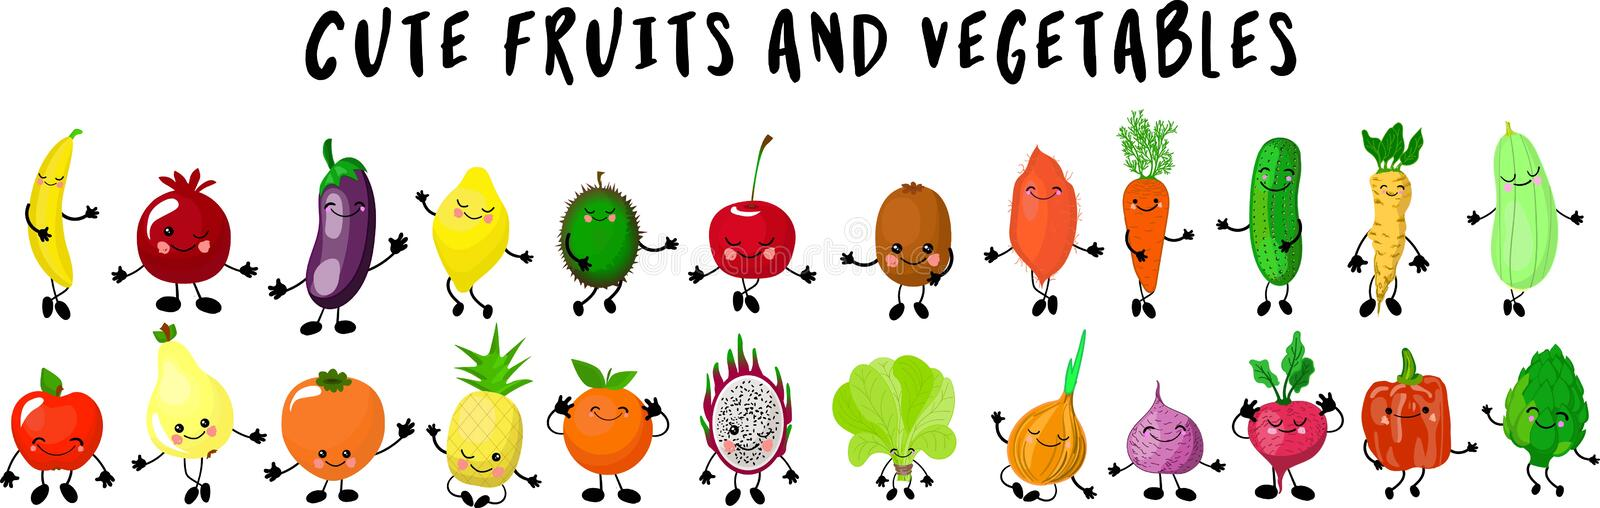 Fruits and vegetables. Big collection of characters gesturing and waving their hands.hite background. Different mixed together vector illustration